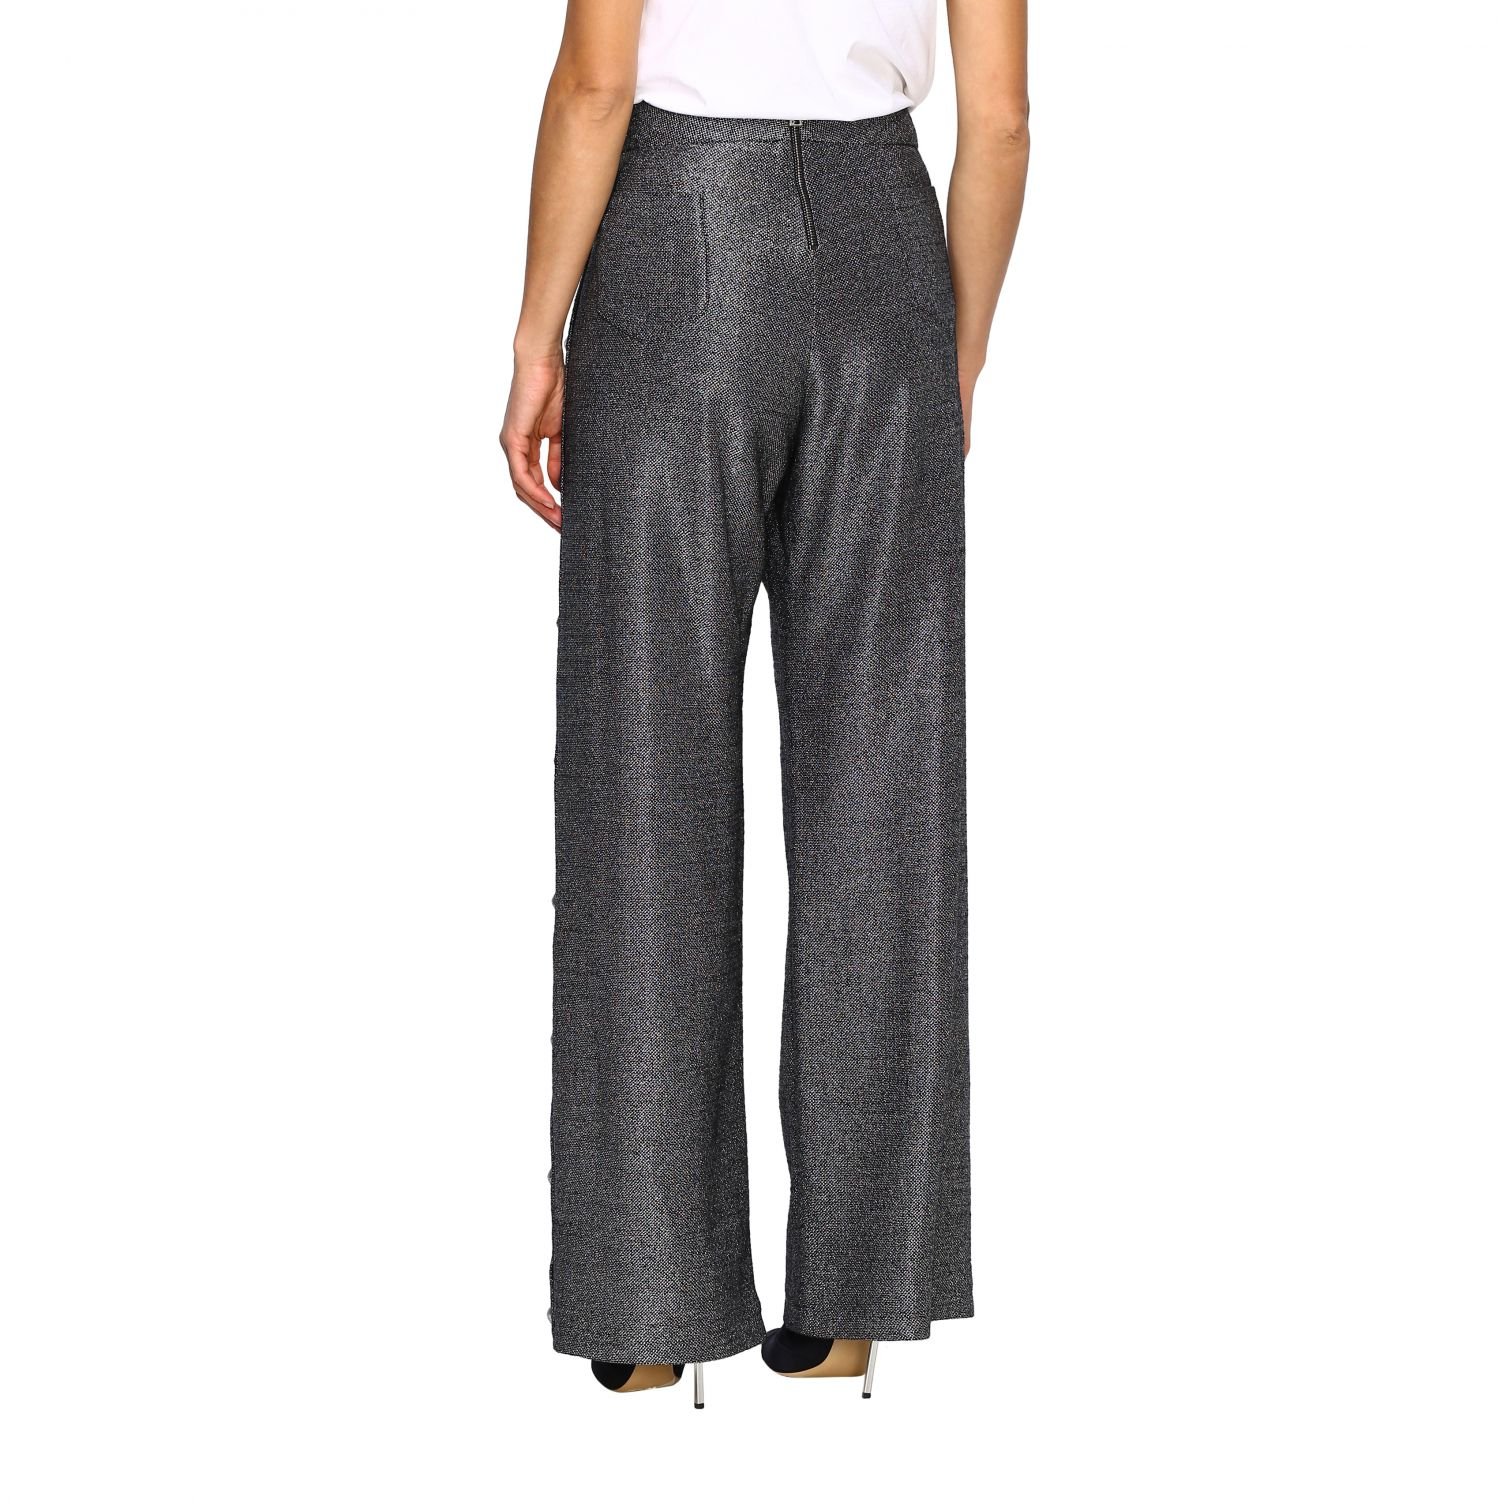 Trousers Balmain: Wide Balmain trousers in lurex knit with jewel buttons black 3